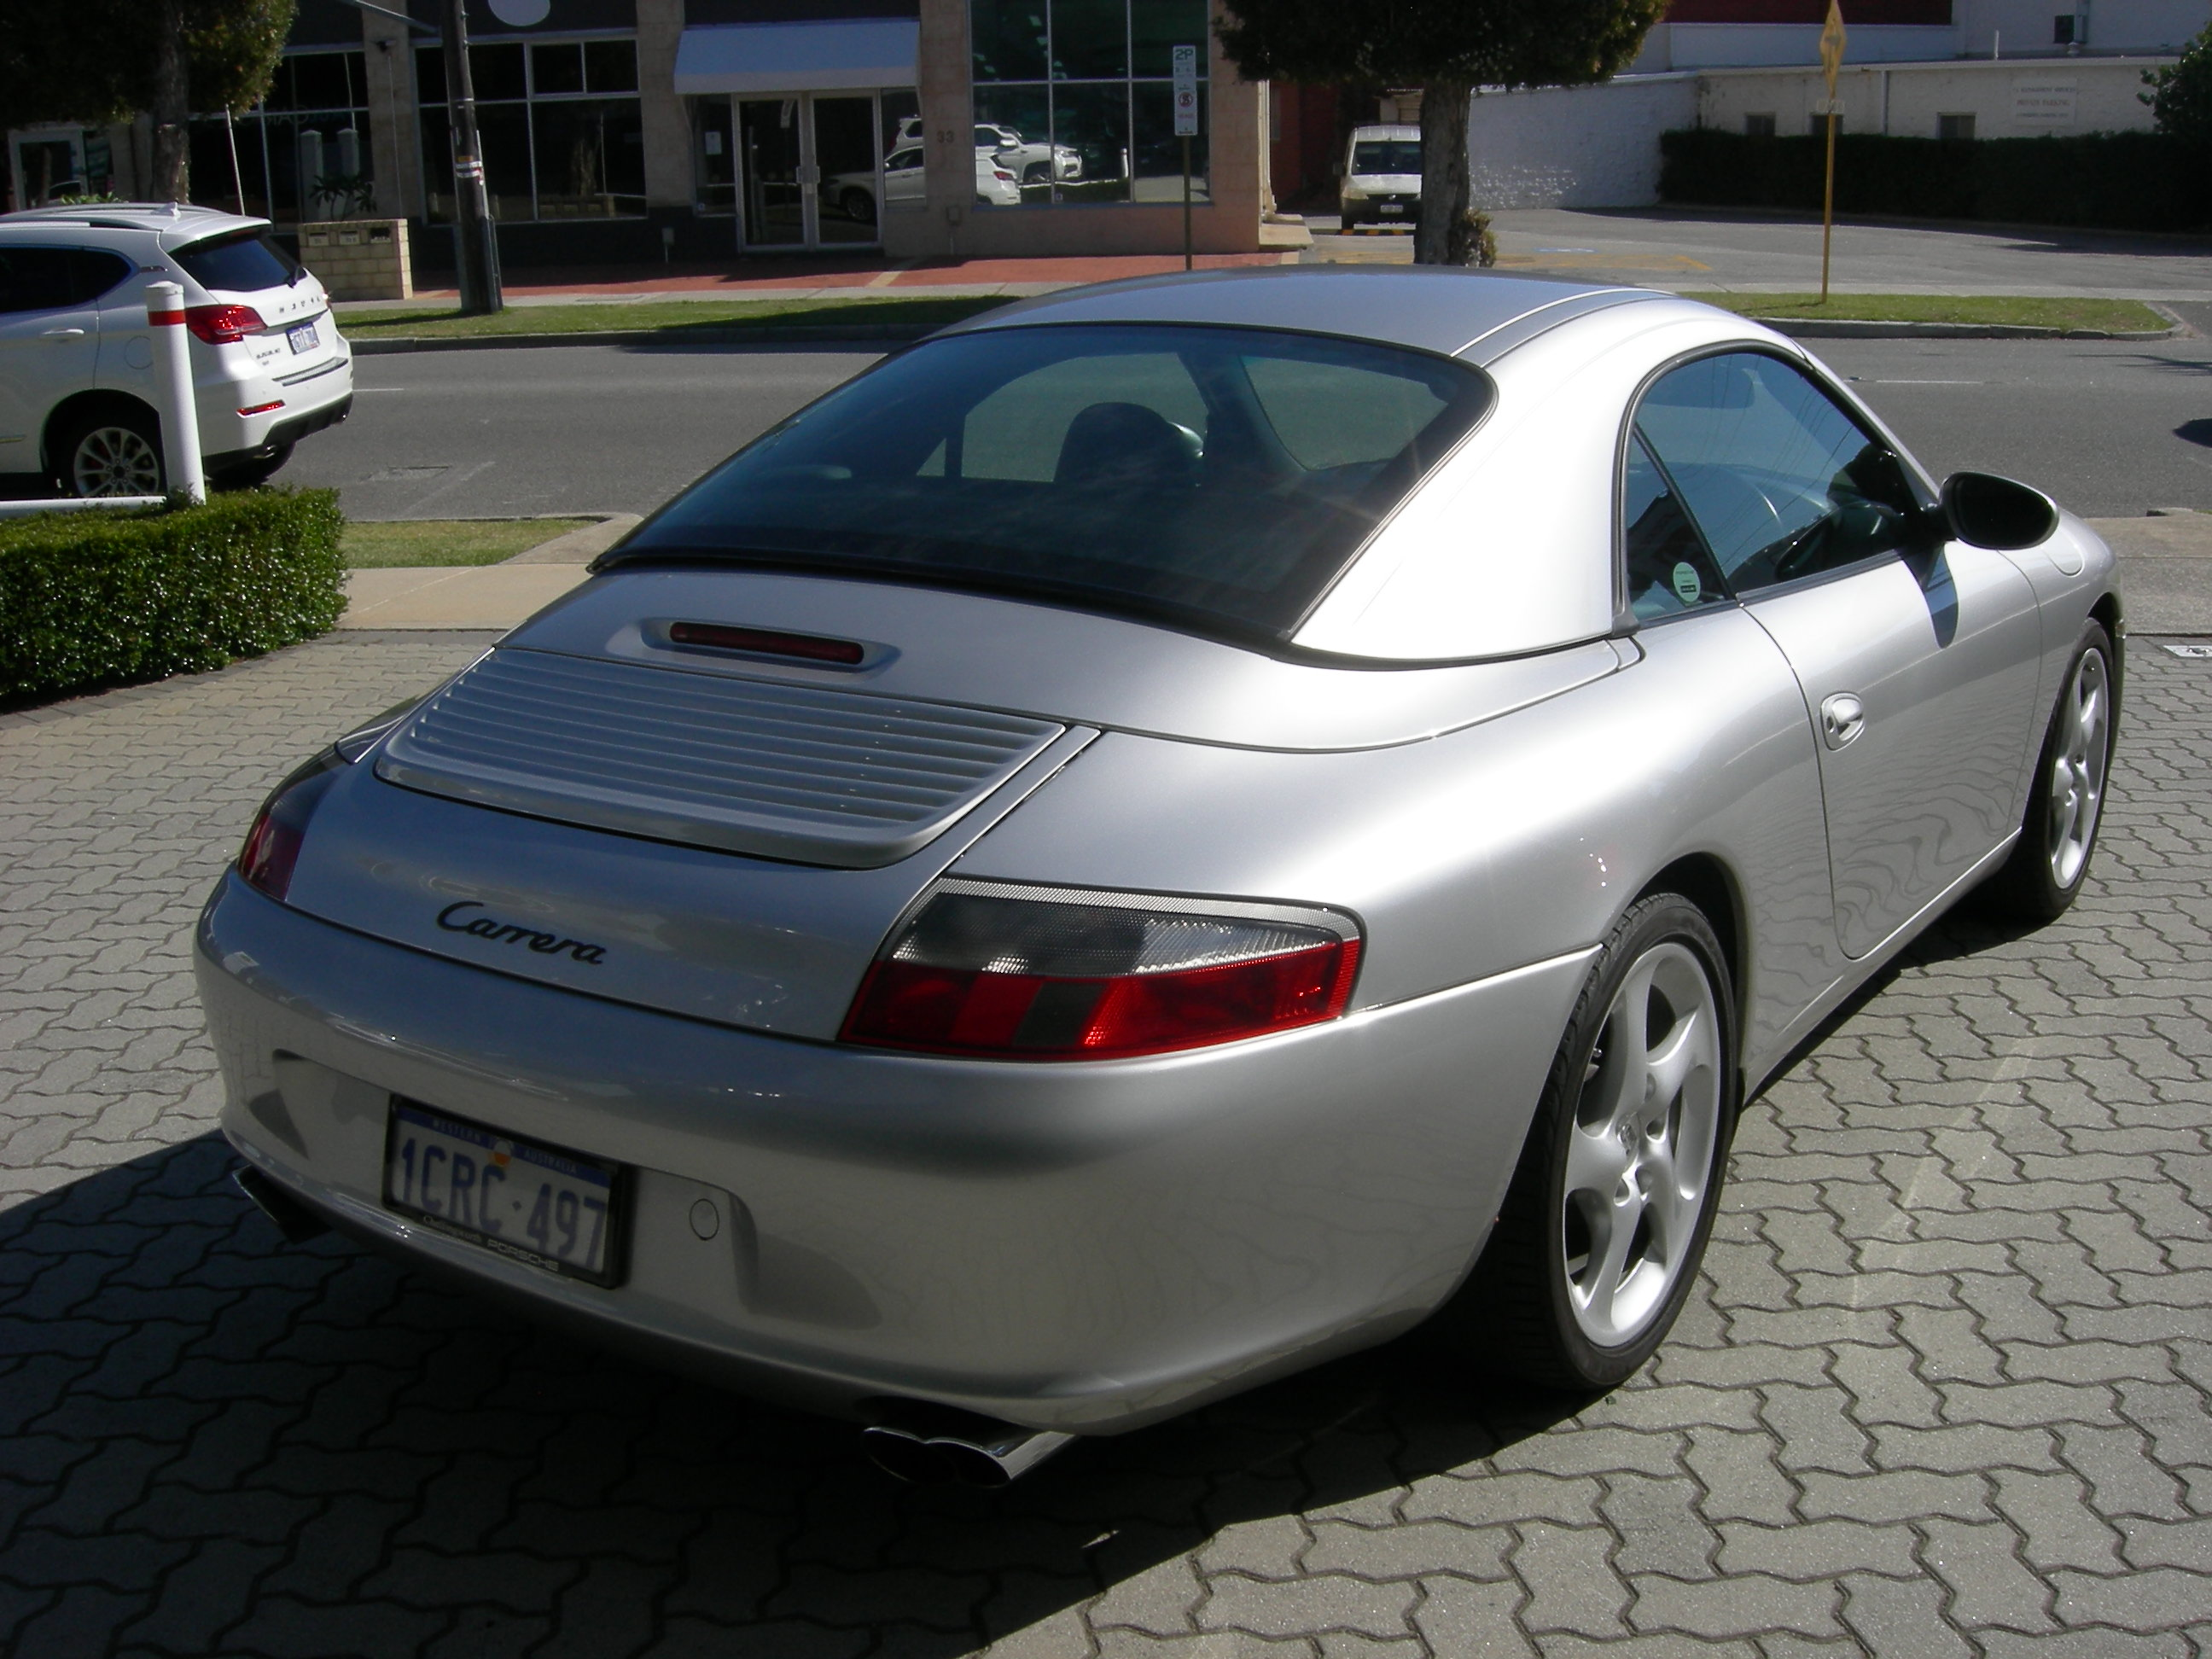 Porsche 911 for sale in Perth